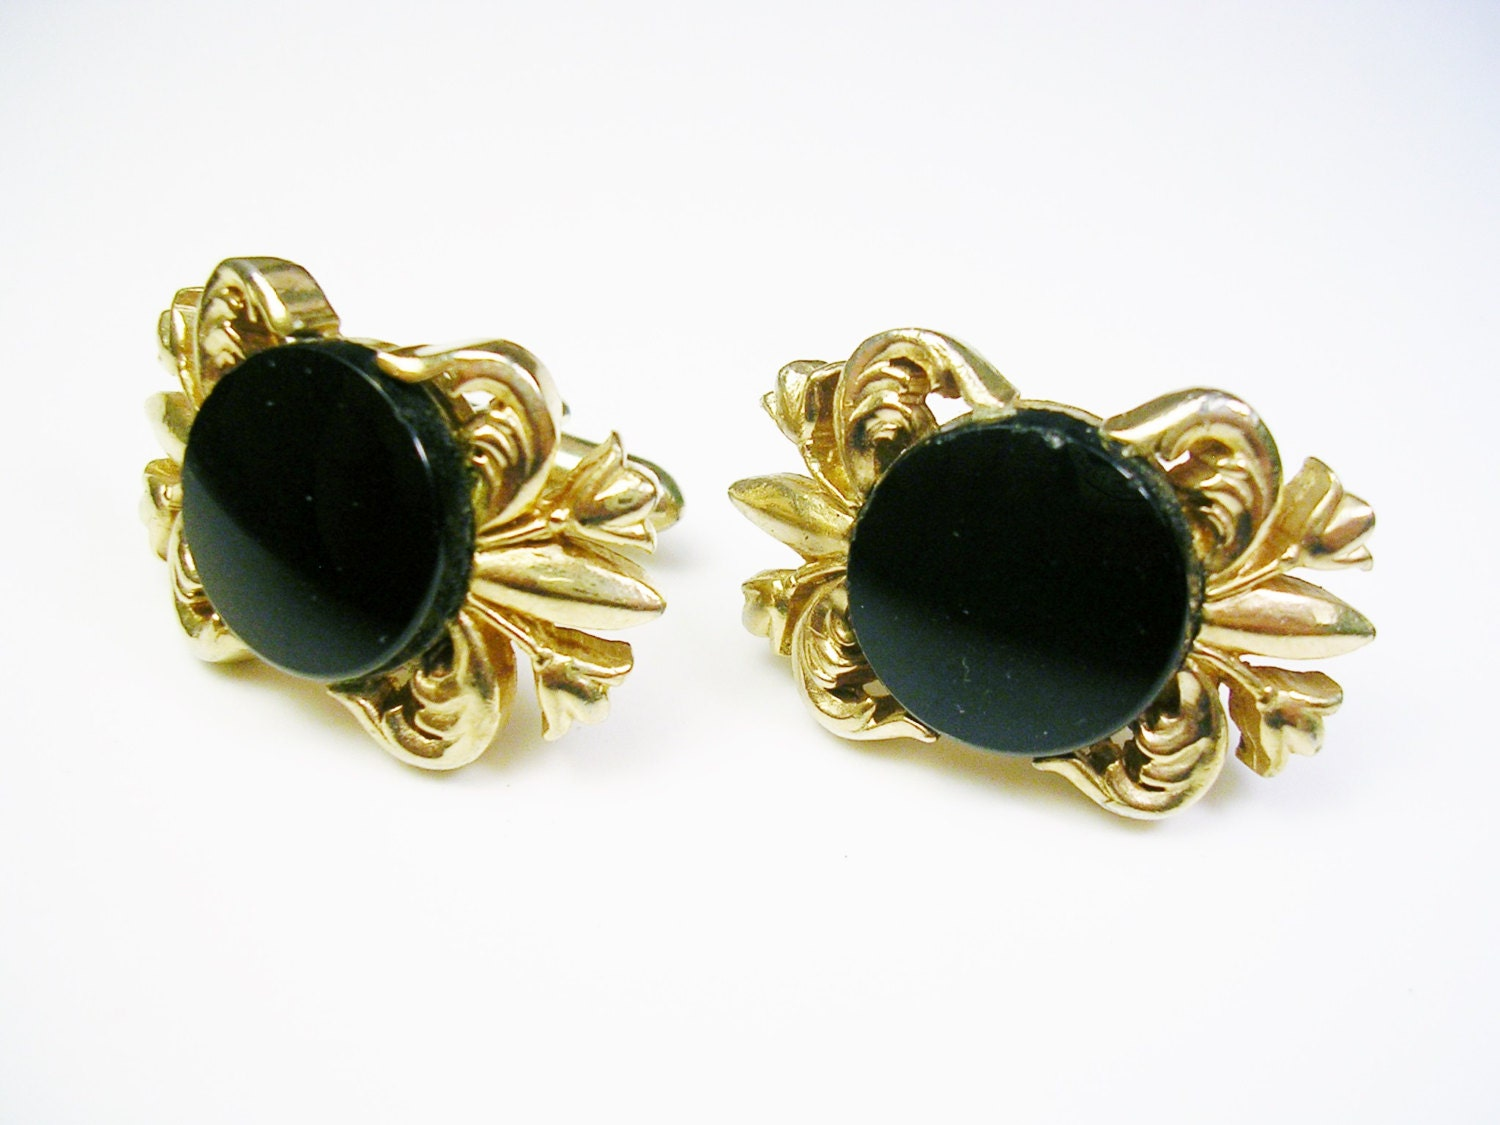 Vintage swank cufflinks gold tone black front wedding for What is swank jewelry